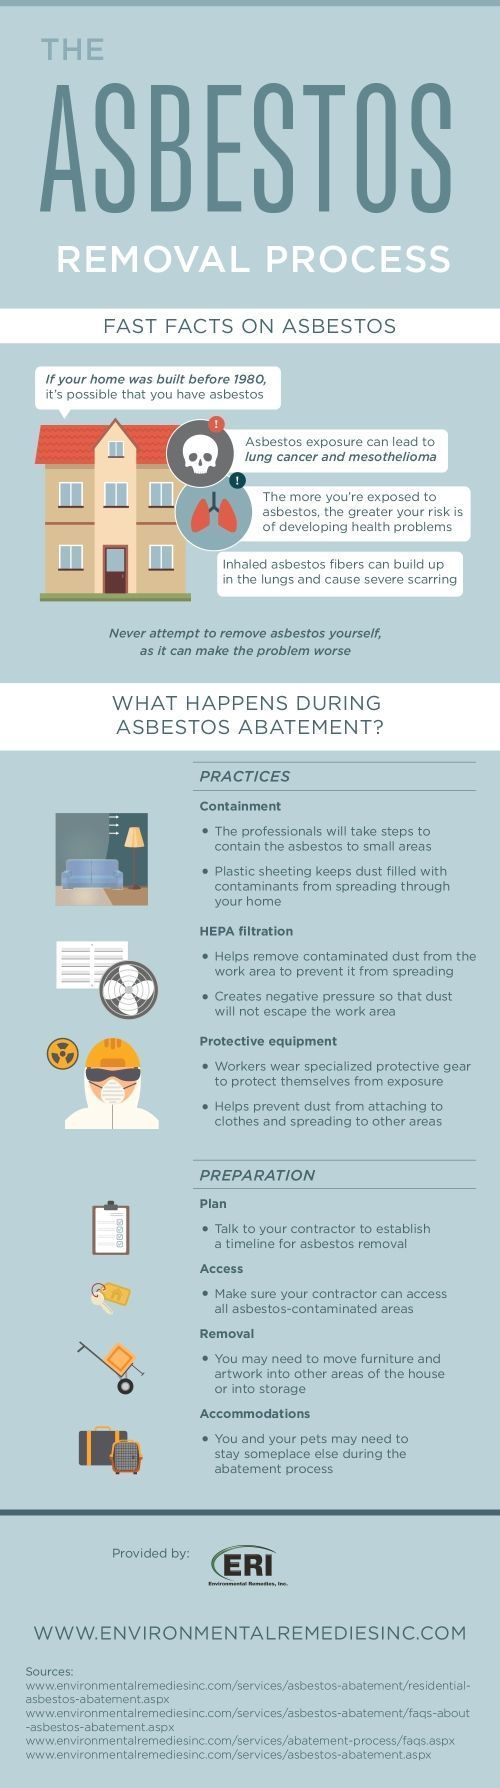 Asbestos Removal Should Only Be Performed By Someone With The